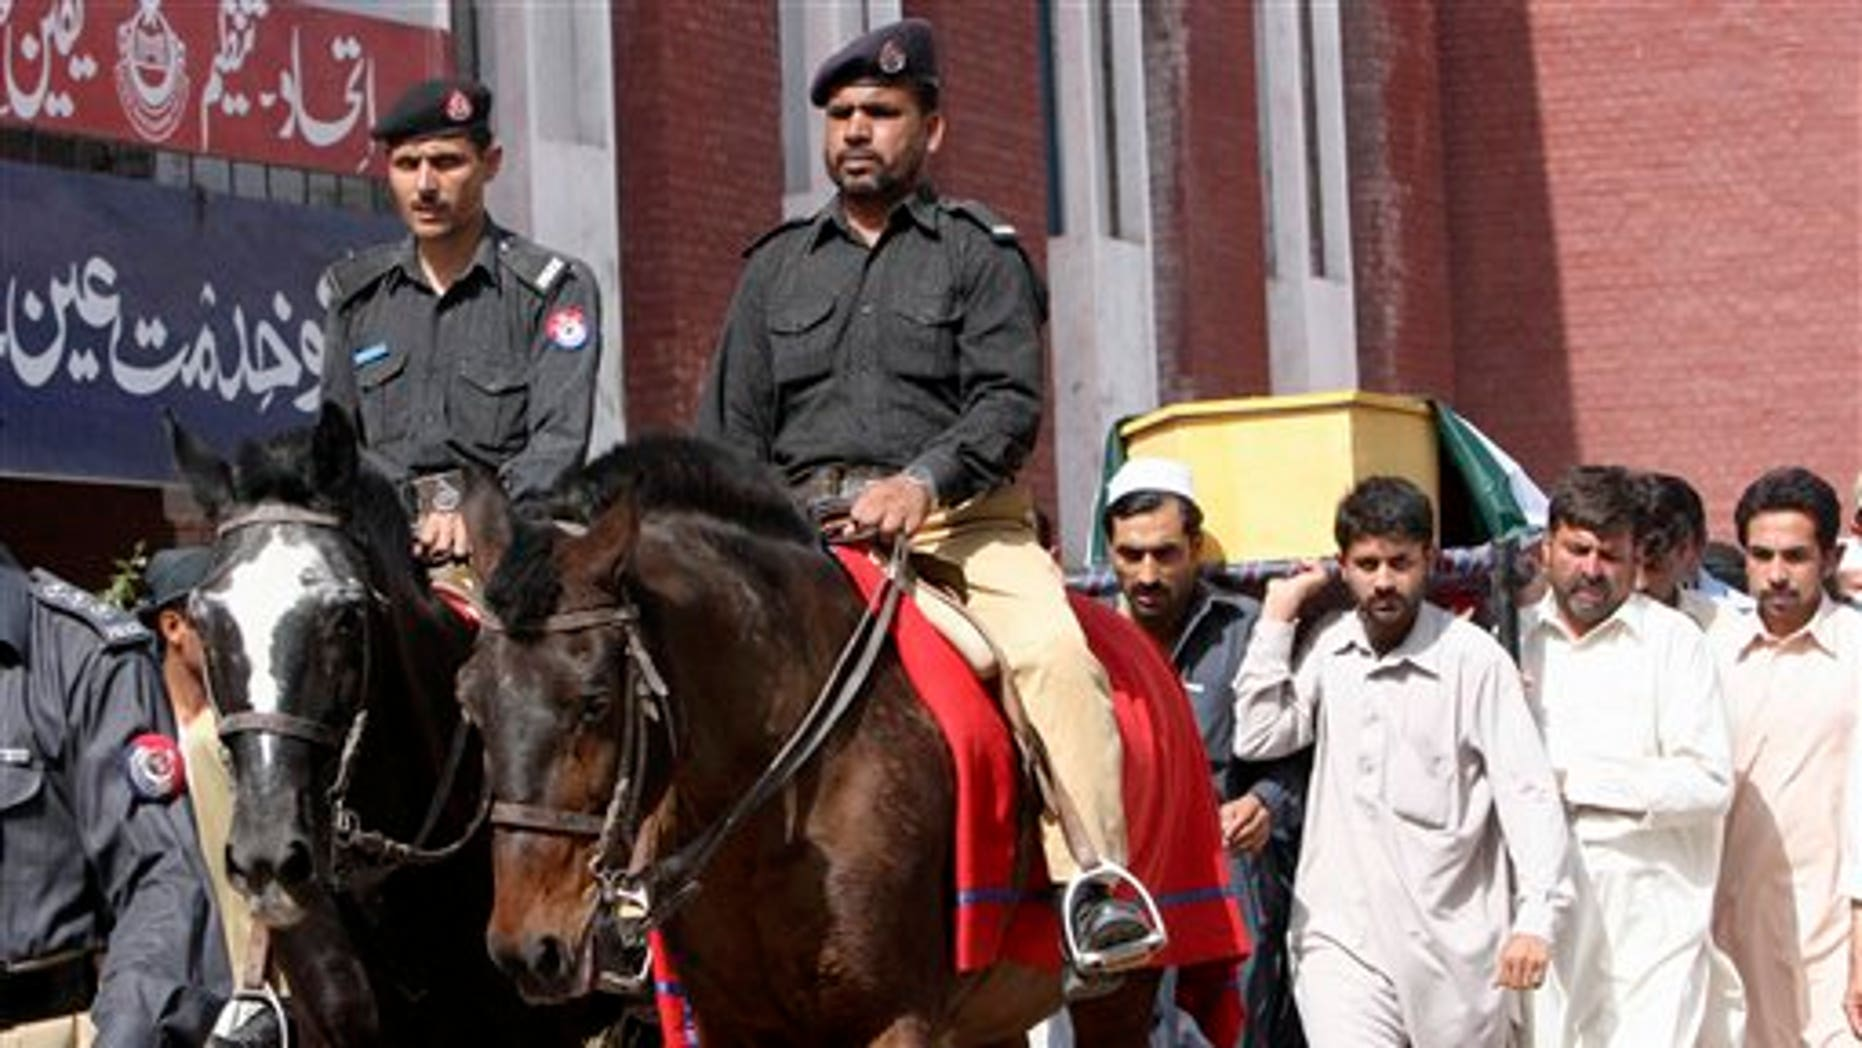 May 18: Pakistani police officers ride horses in front of  relatives of one of two officers, who were killed in an attack by militants at a security checkpoint, carrying his body during his funeral procession in Peshawar, Pakistan.